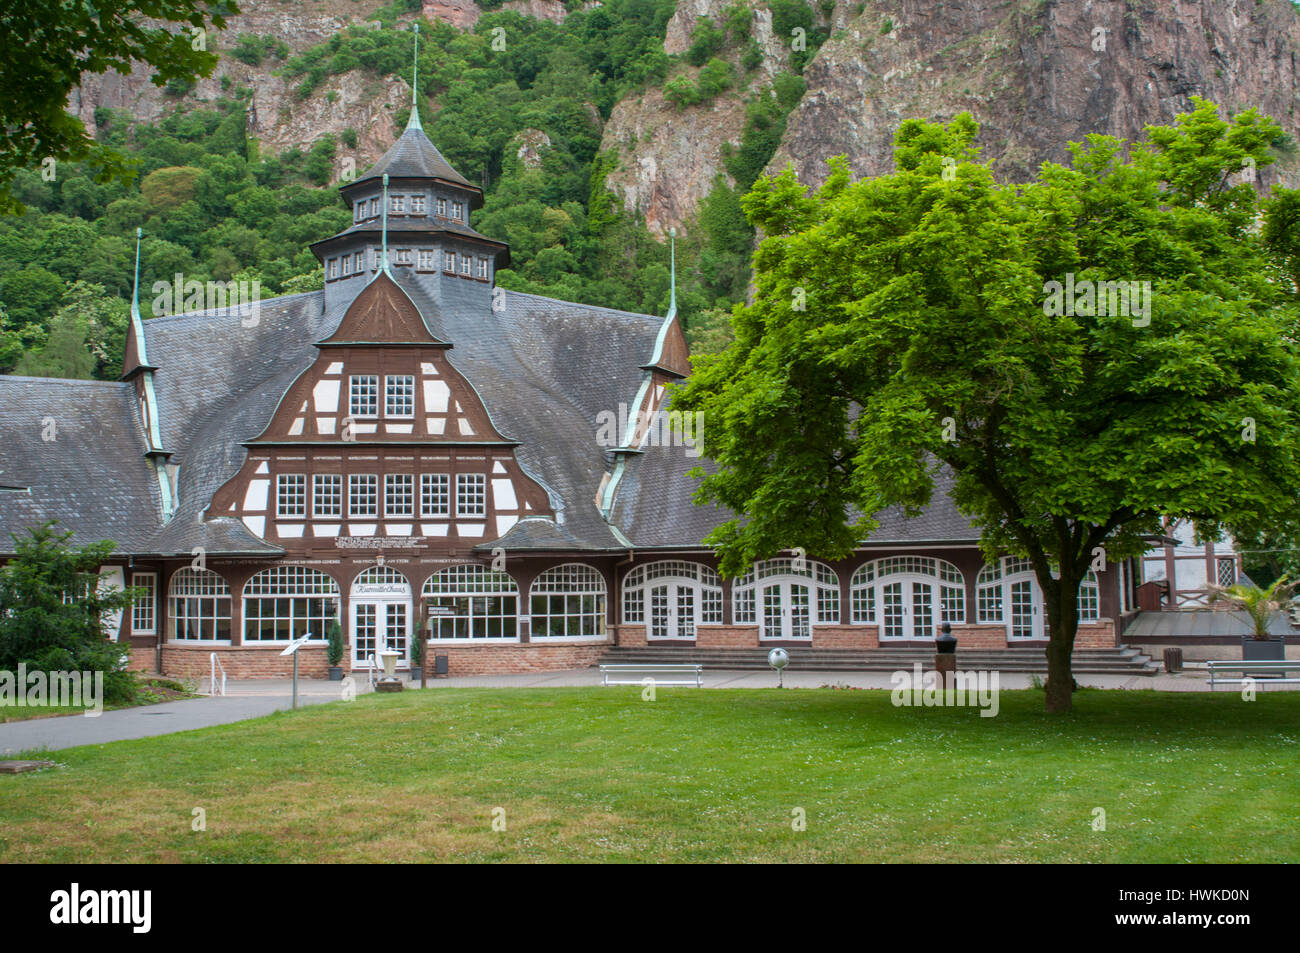 bad munster am stein ebernburg stock photos bad munster am stein ebernburg stock images alamy. Black Bedroom Furniture Sets. Home Design Ideas